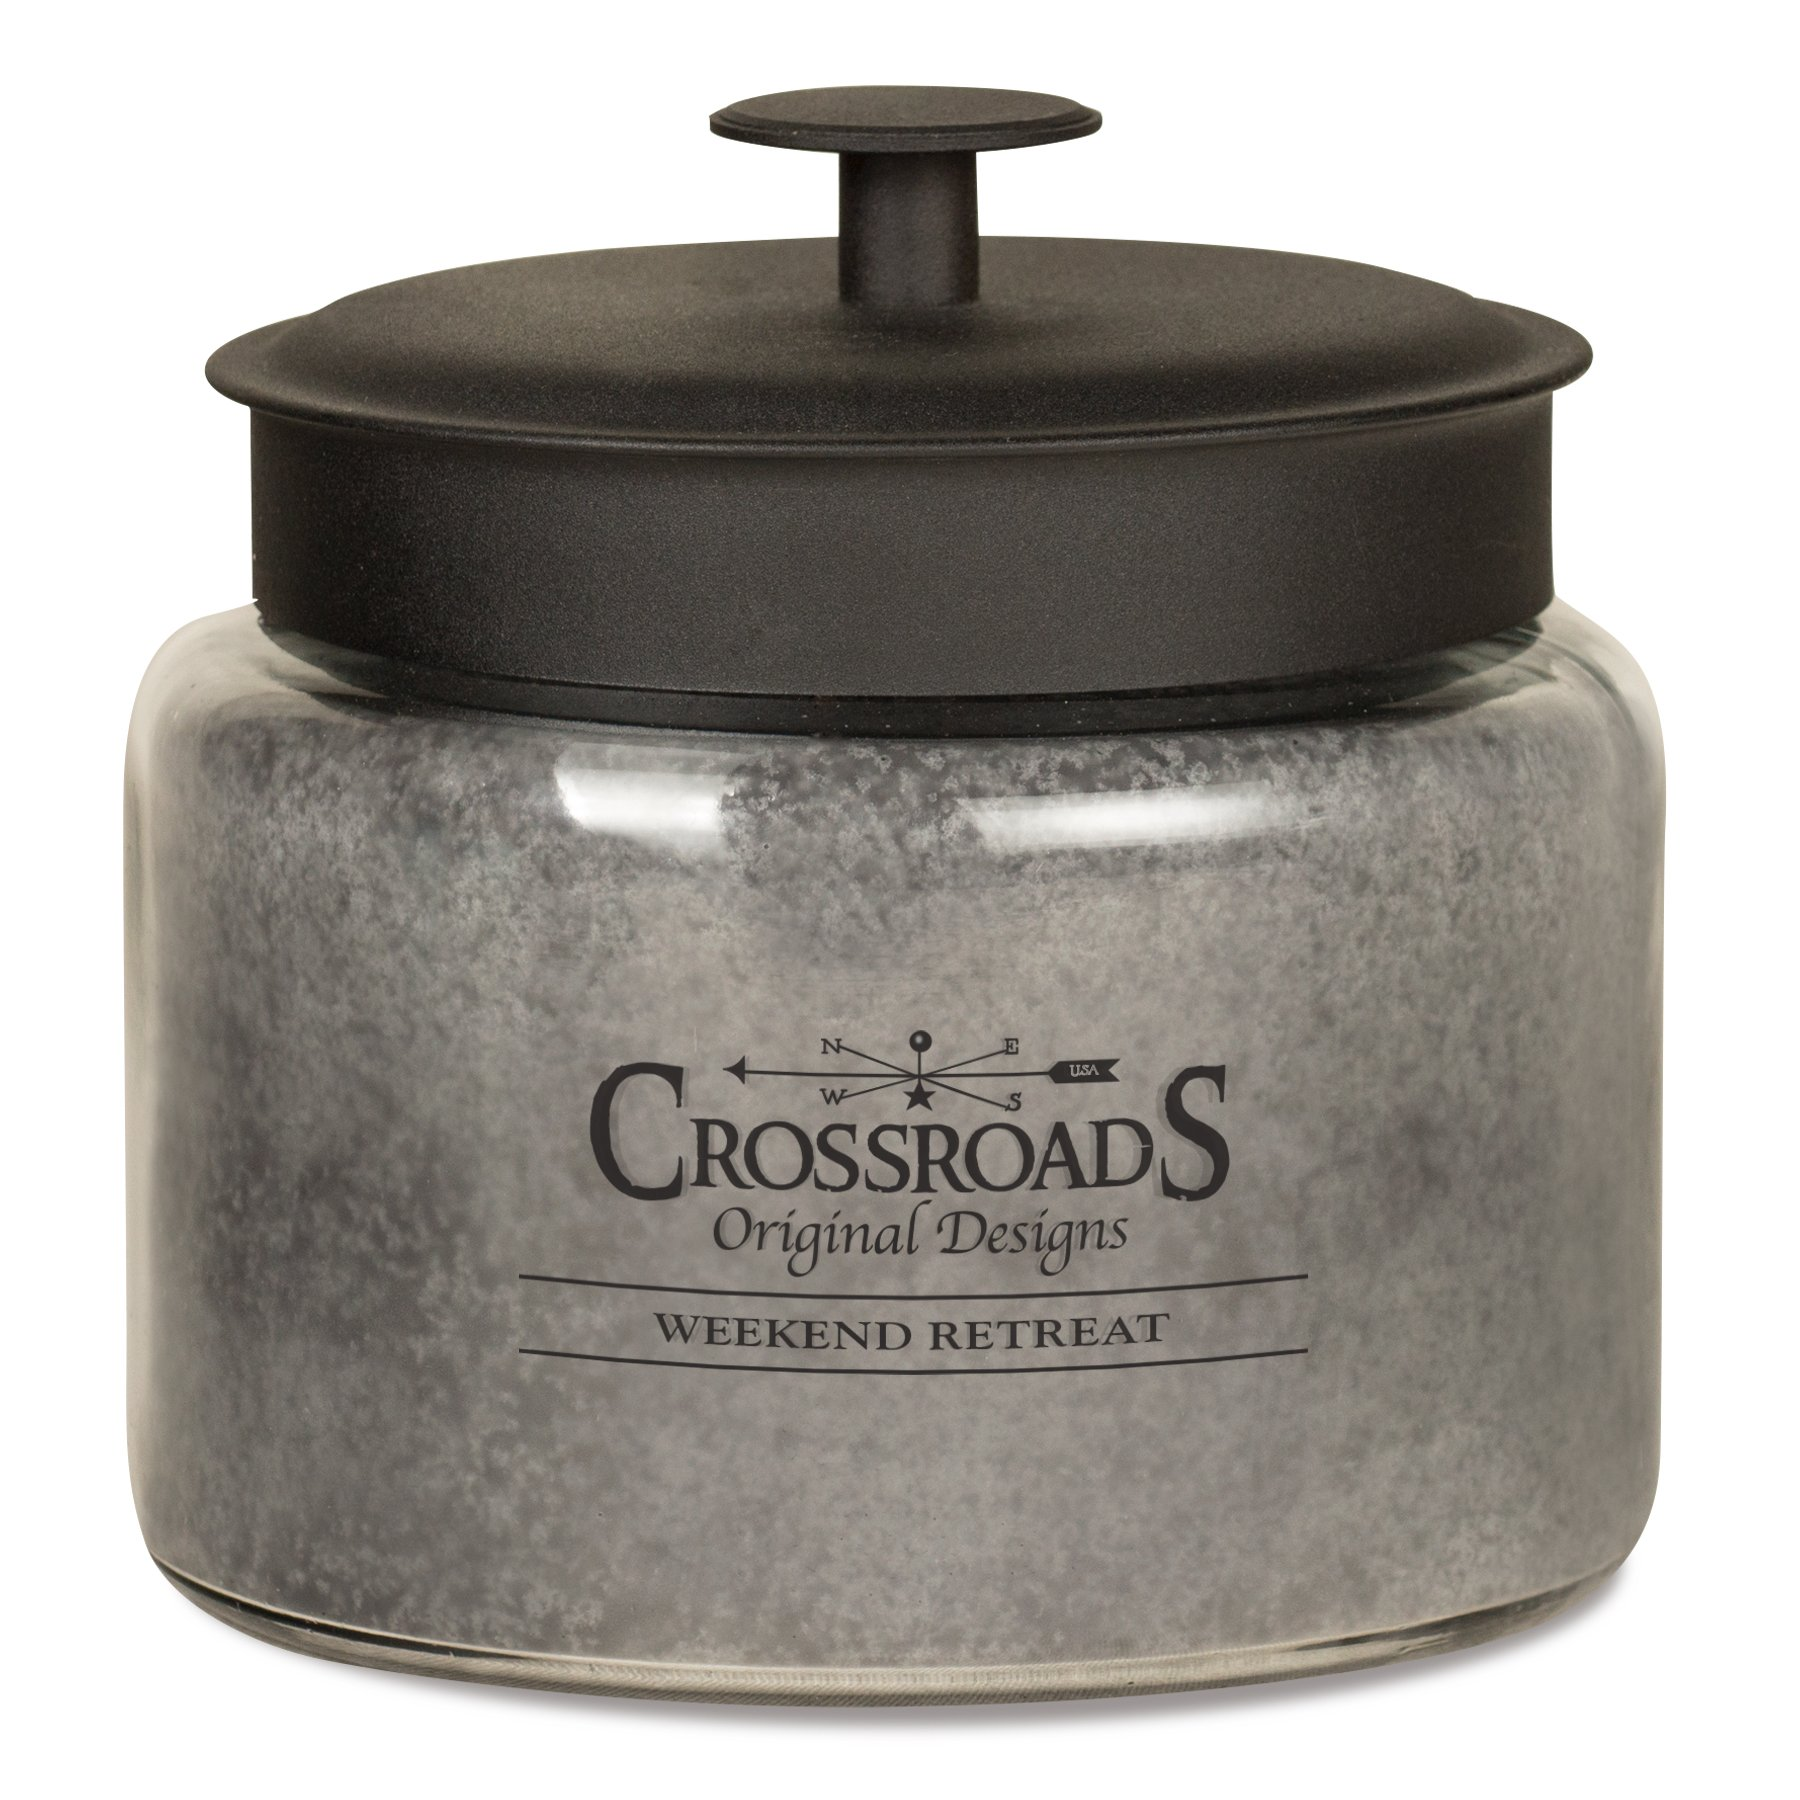 CROSSROADS ORIGINAL DESIGNS Crossroads Weekend Retreat Scented 4-Wick Candle, 64 Ounce